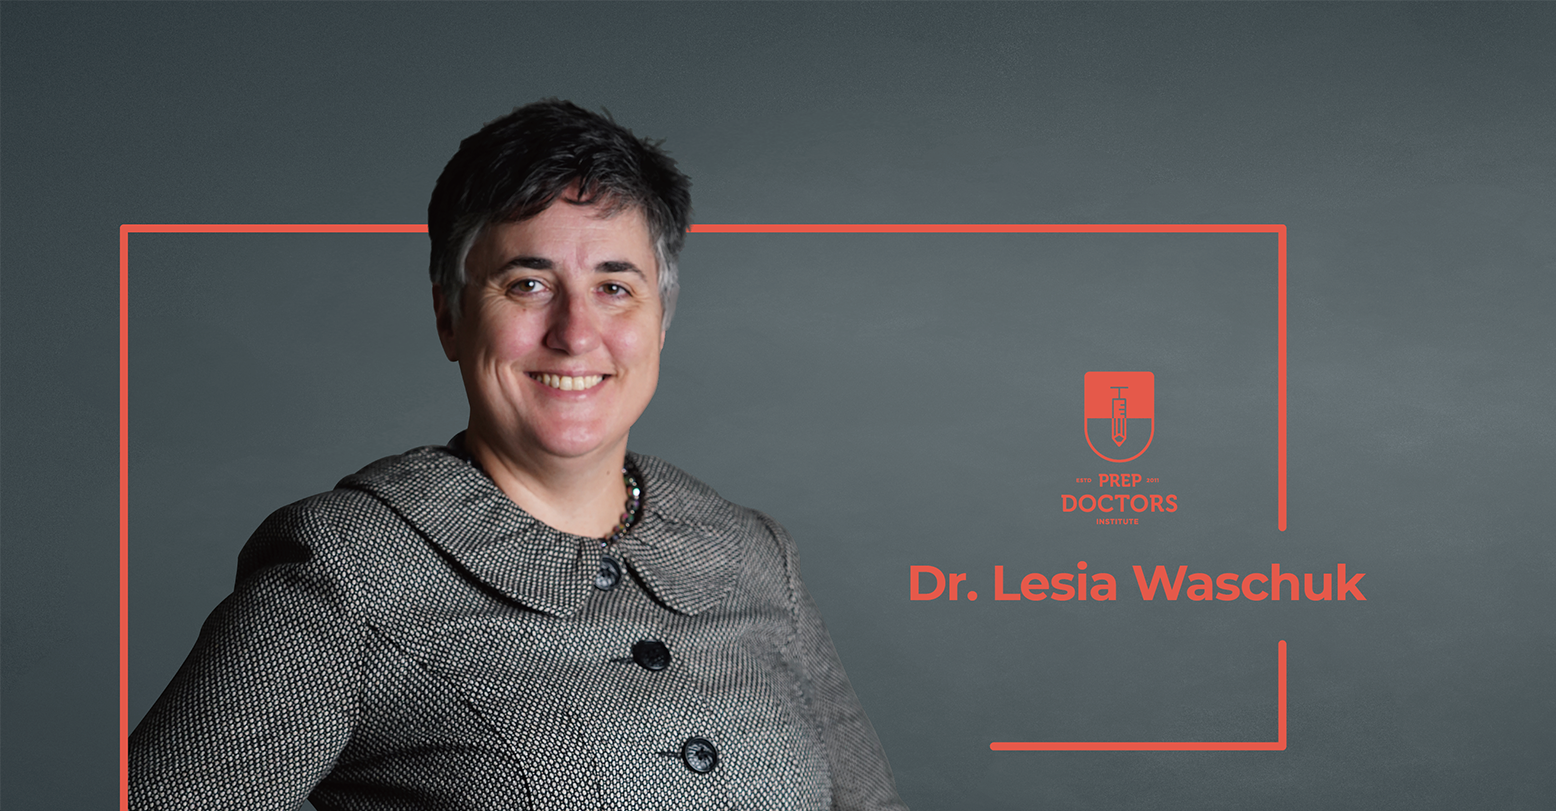 Dr. Lesia Waschuk has joined Prep Doctors as a Compliance and Education Specialist.